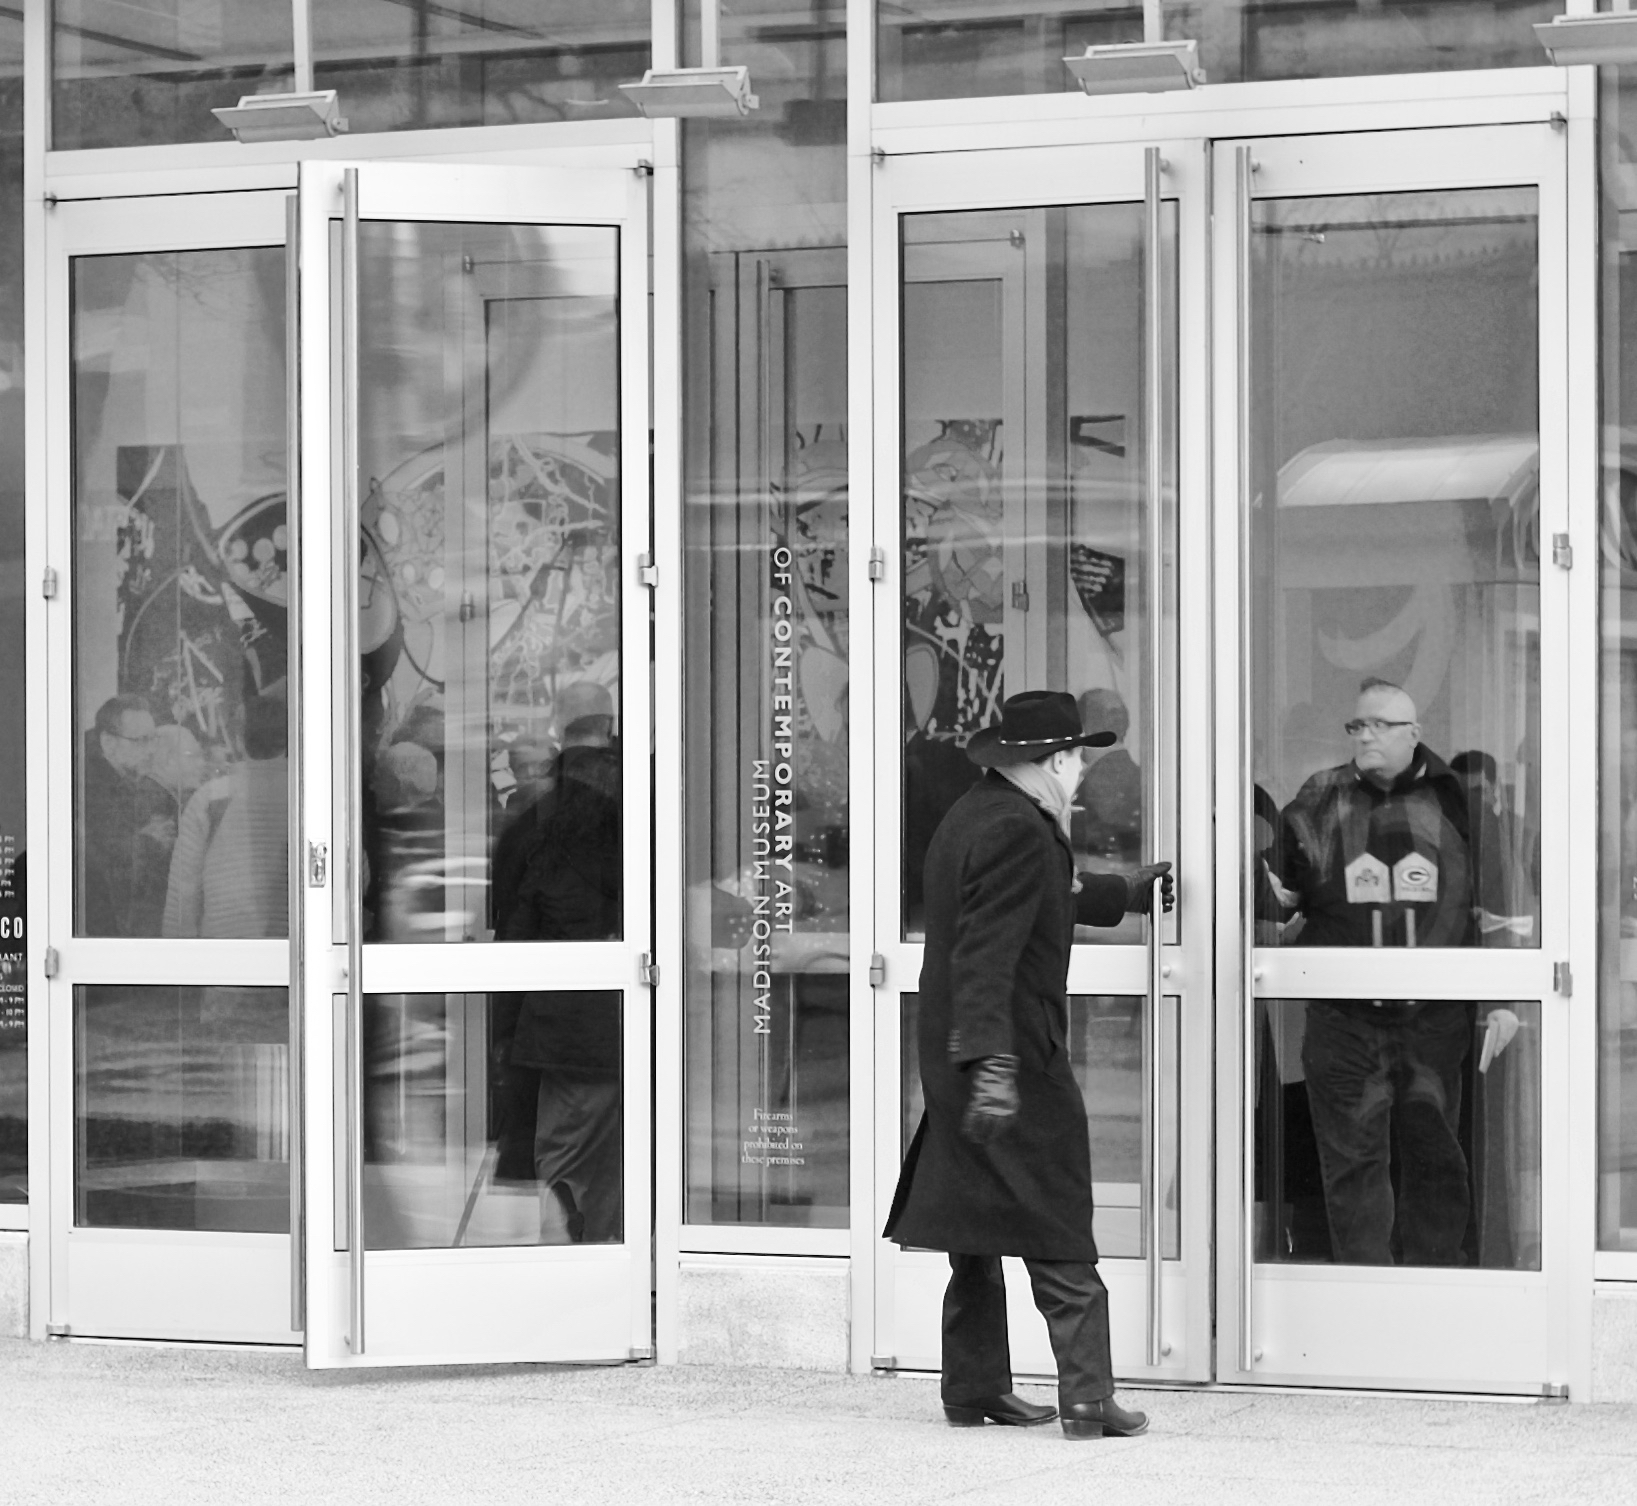 Entryway. State Street. Madison, Wisconsin. April 2016. © William D. Walker